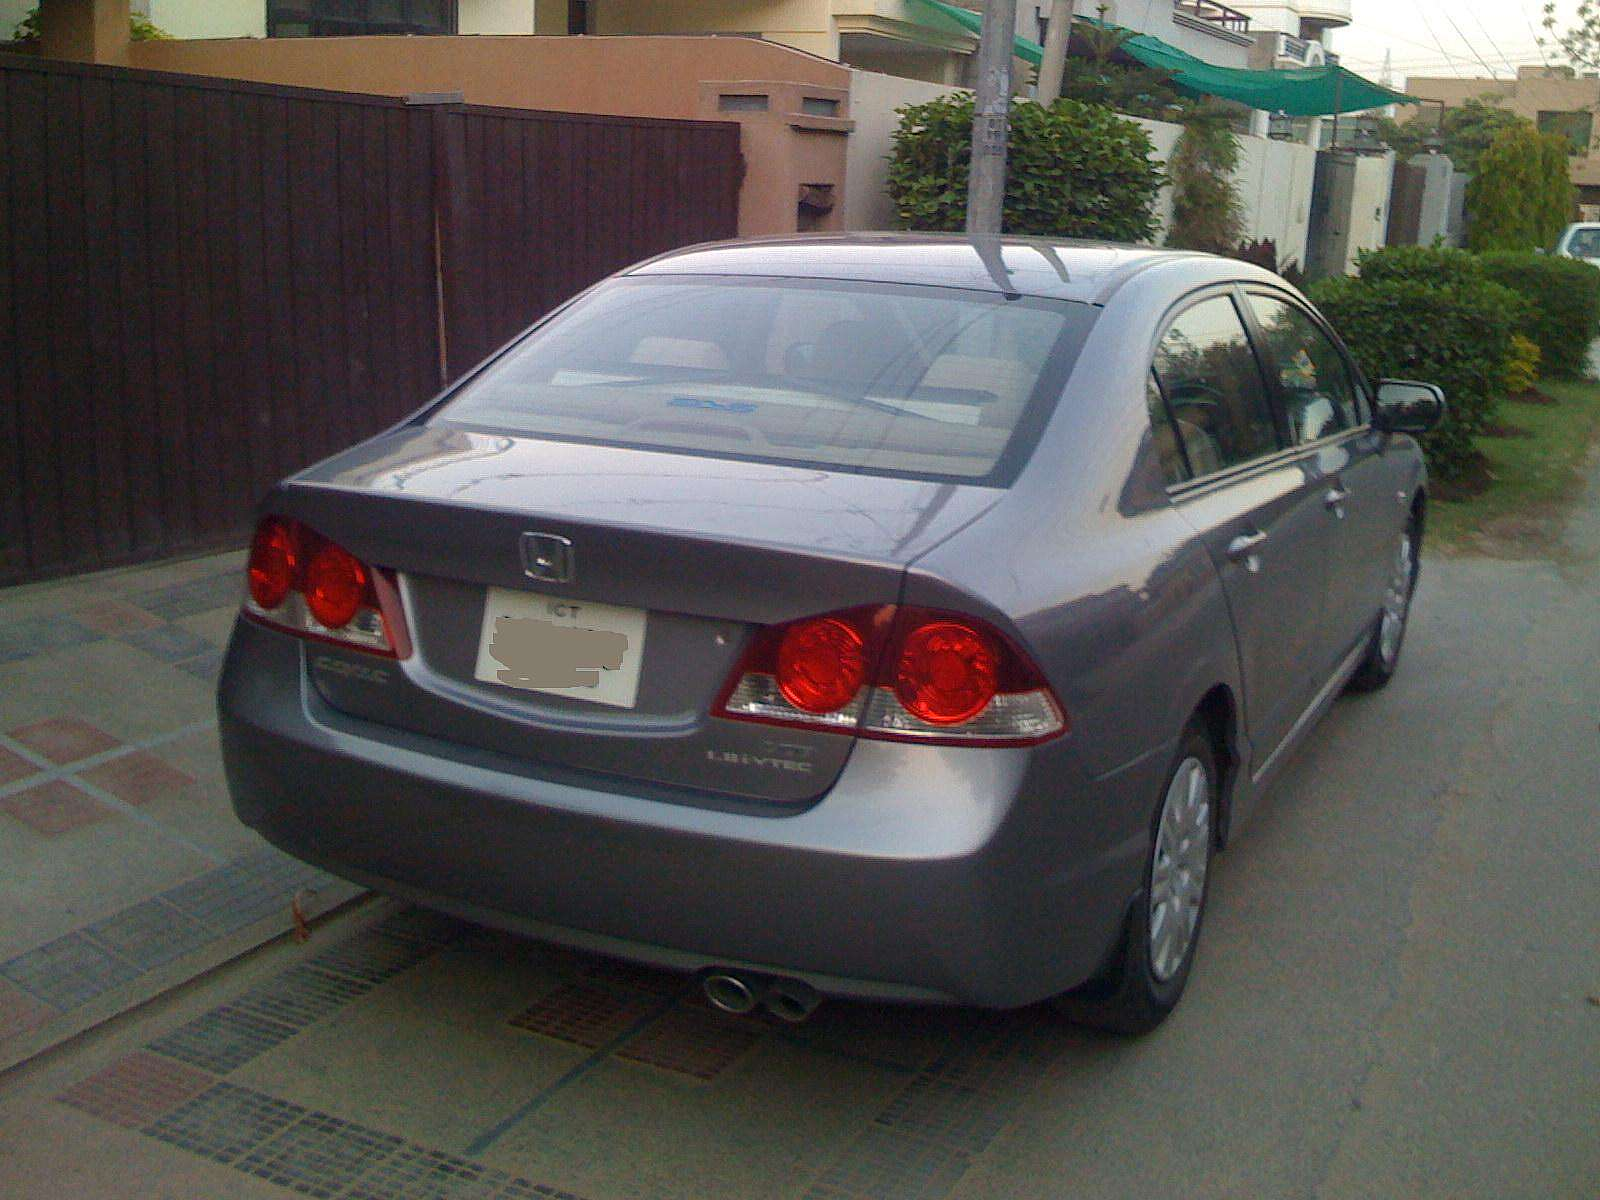 civic hybrid wiki for commons sale file honda wikimedia